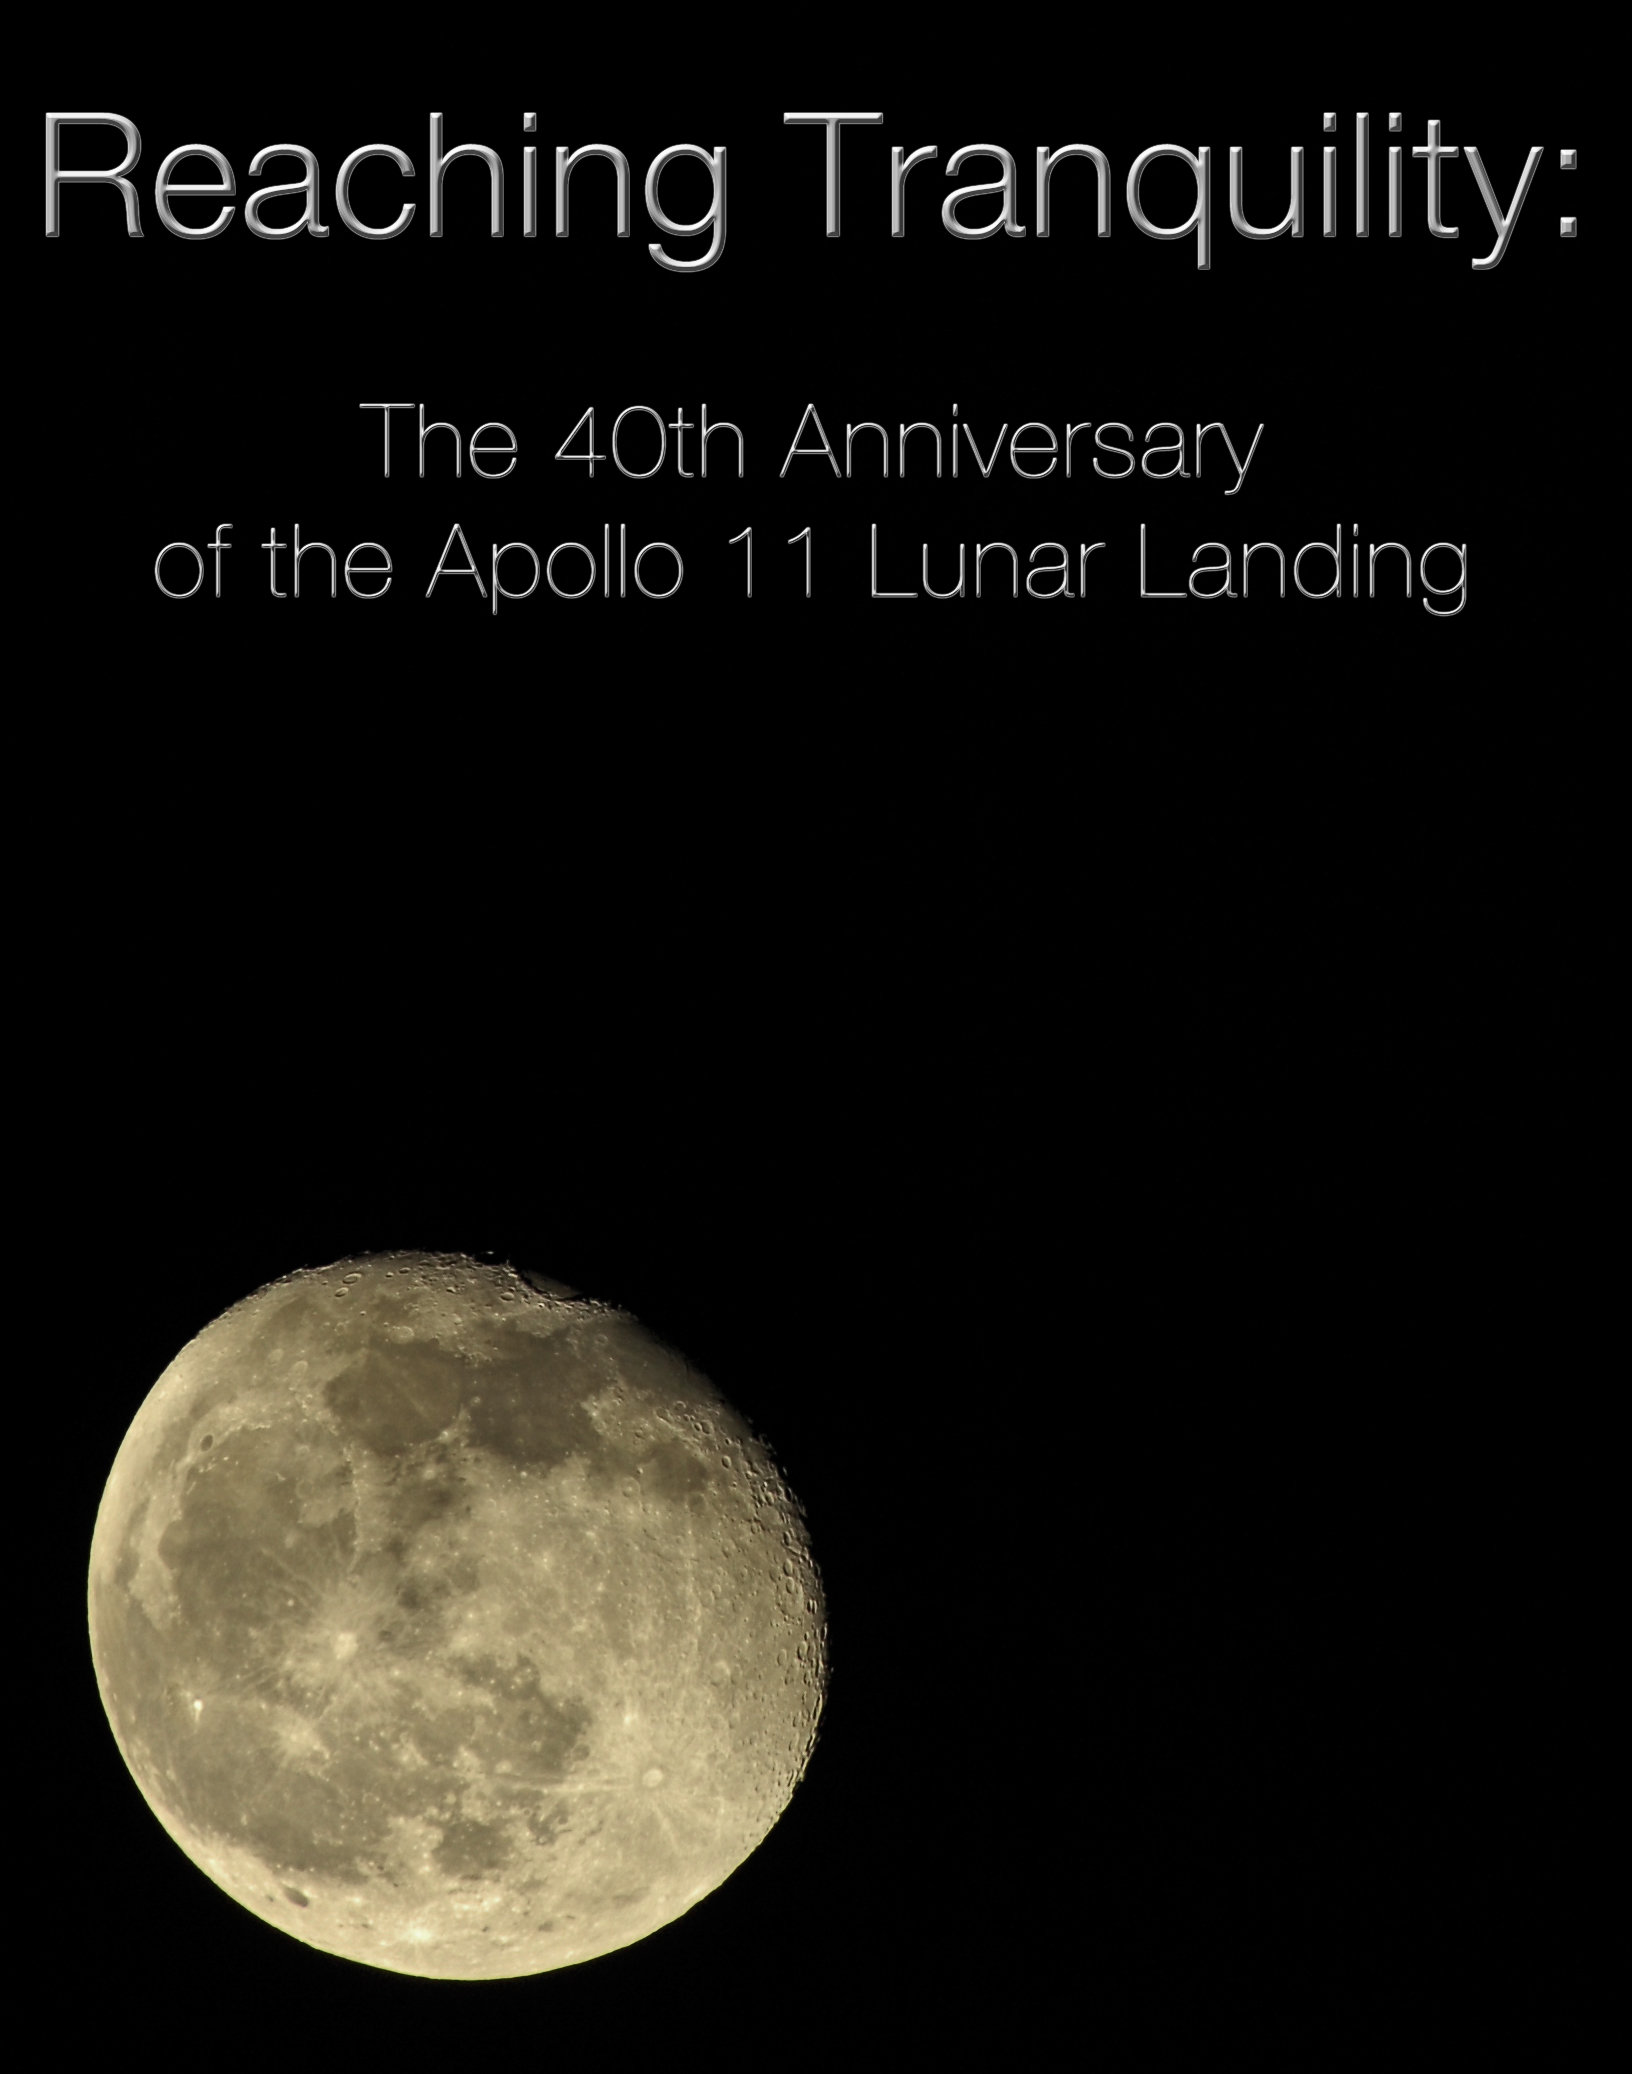 image Reaching Tranquility: The 40th Anniversary of the Apollo 11 Lunar Landing Watch Full Movie Free Online